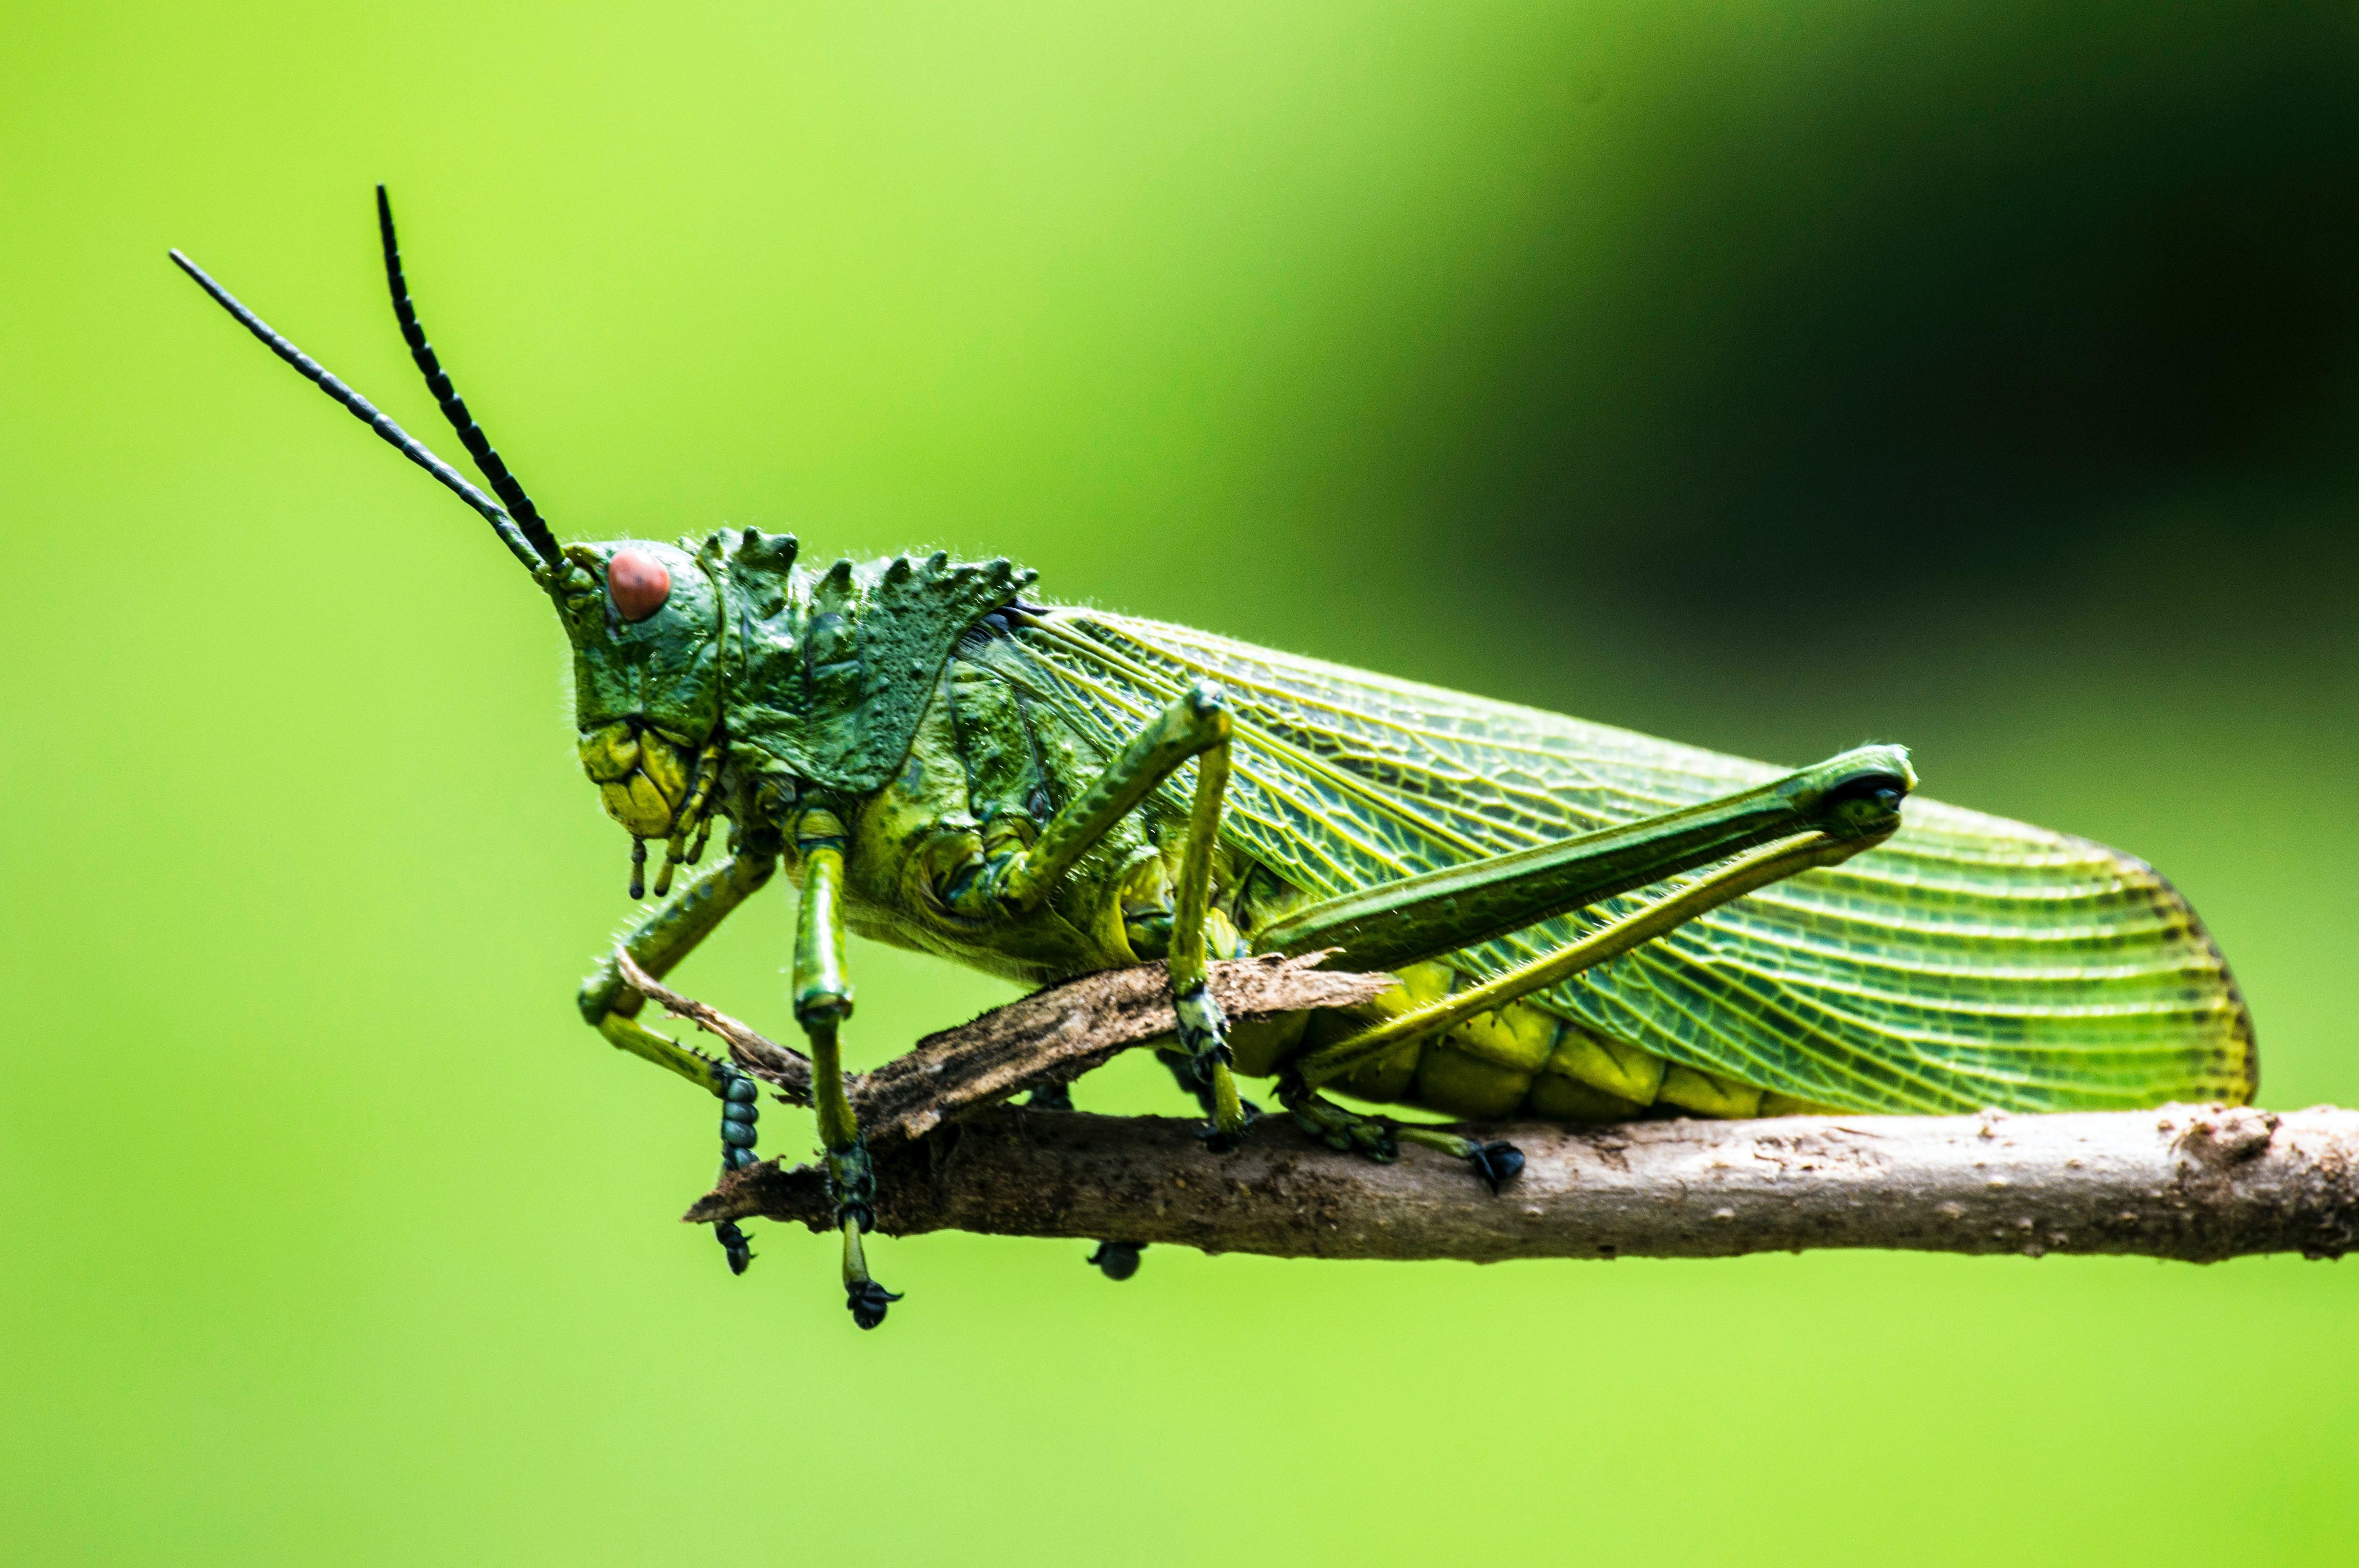 A close up of a grasshopper perched on a twig